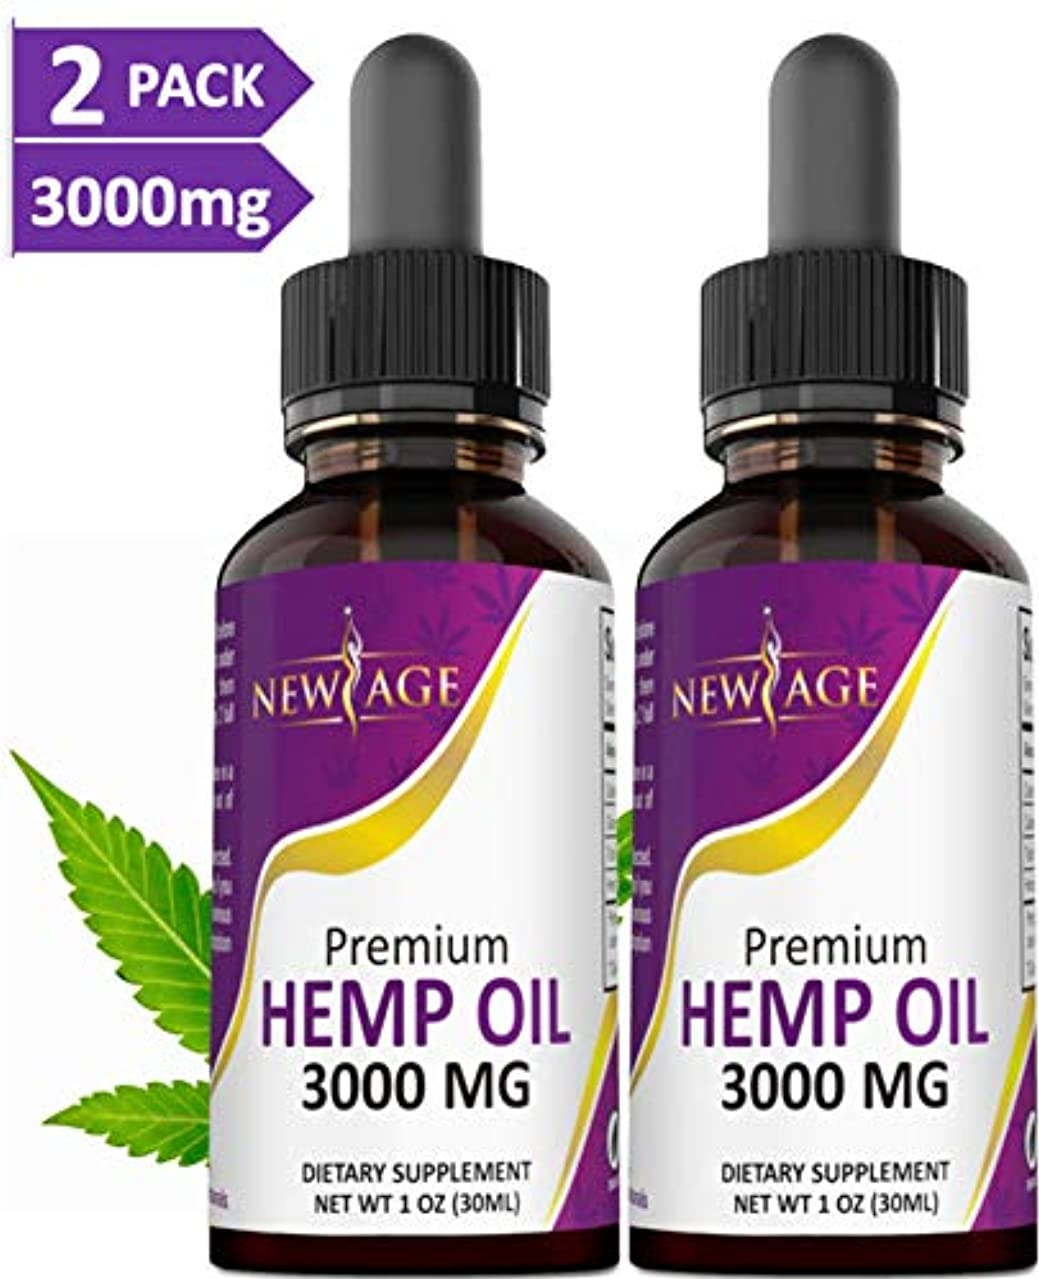 (2-Pack) 3000mg Hemp Oil Extract for Pain, Anxiety & Stress Relief - 3000mg of Pure Hemp Extract - Grown & Made in USA - 100% Natural Hemp Drops - Helps with Sleep, Skin & Hair.